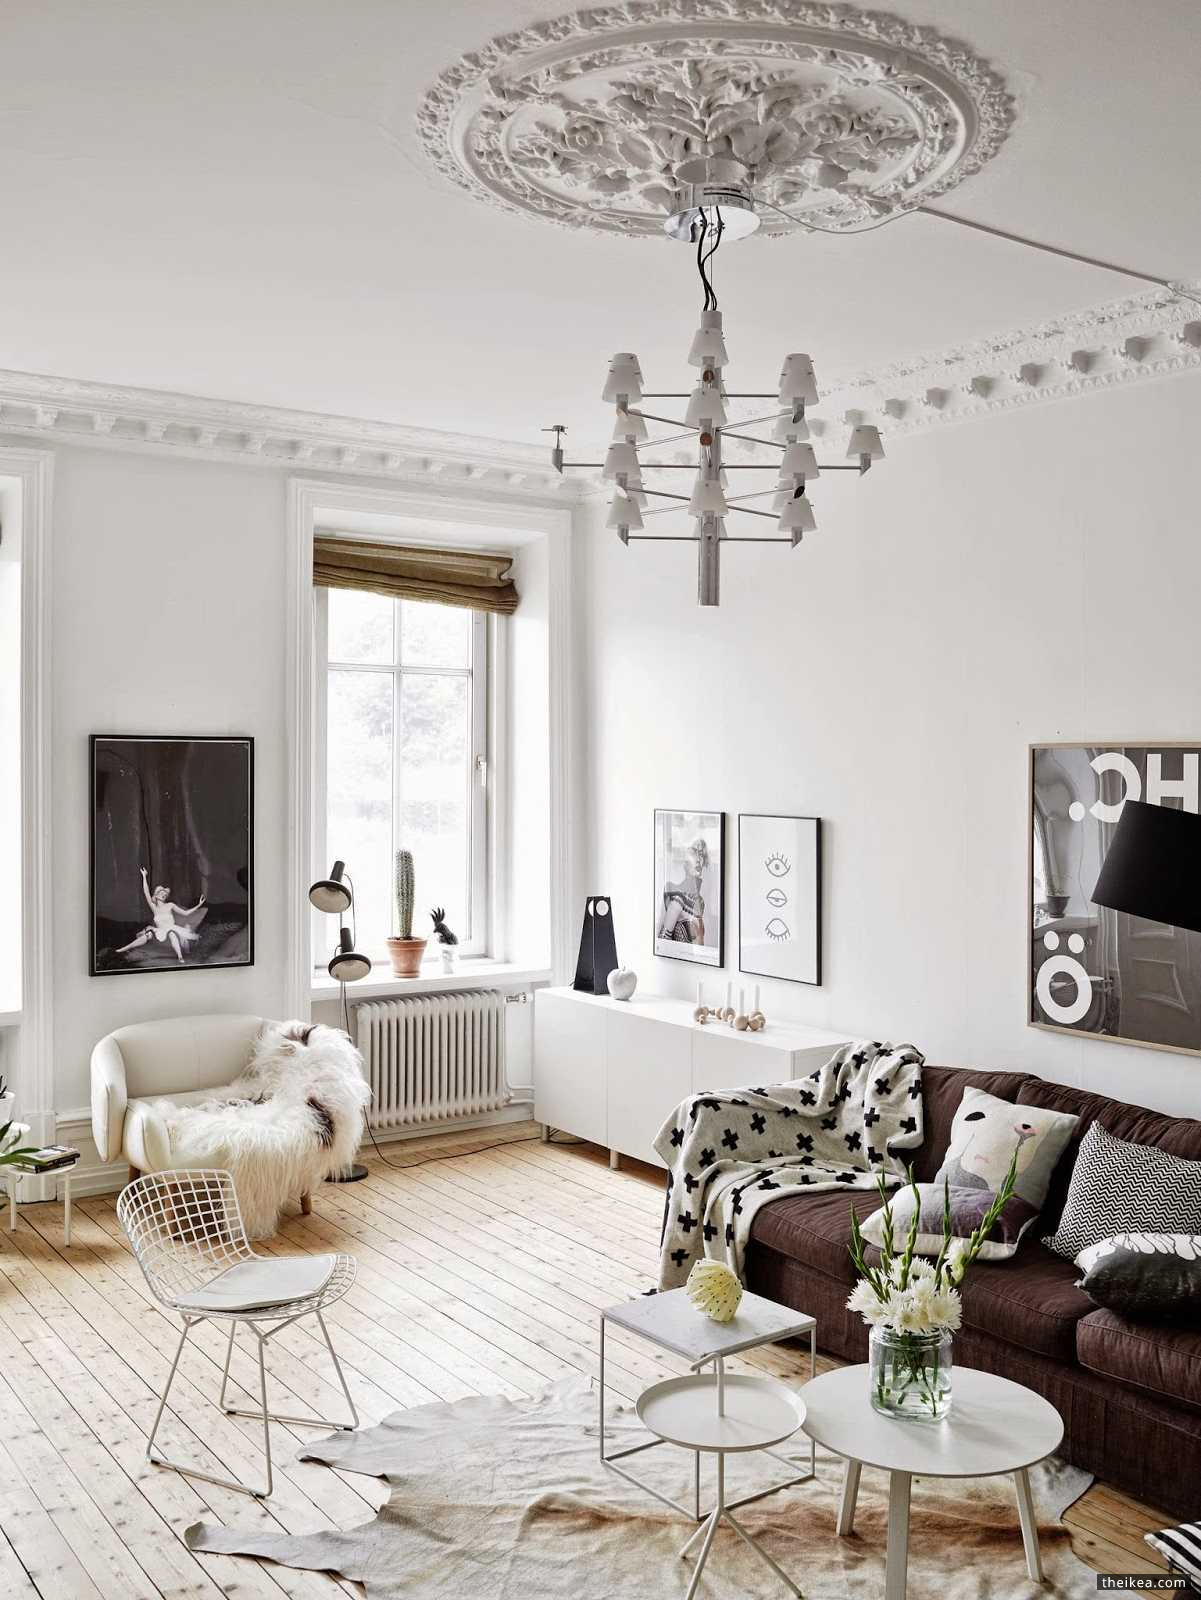 A Wonderful Swedish Apartment In Neutrals - http://www.theikea.com/home-design-ideas/a-wonderful-swedish-apartment-in-neutrals.html